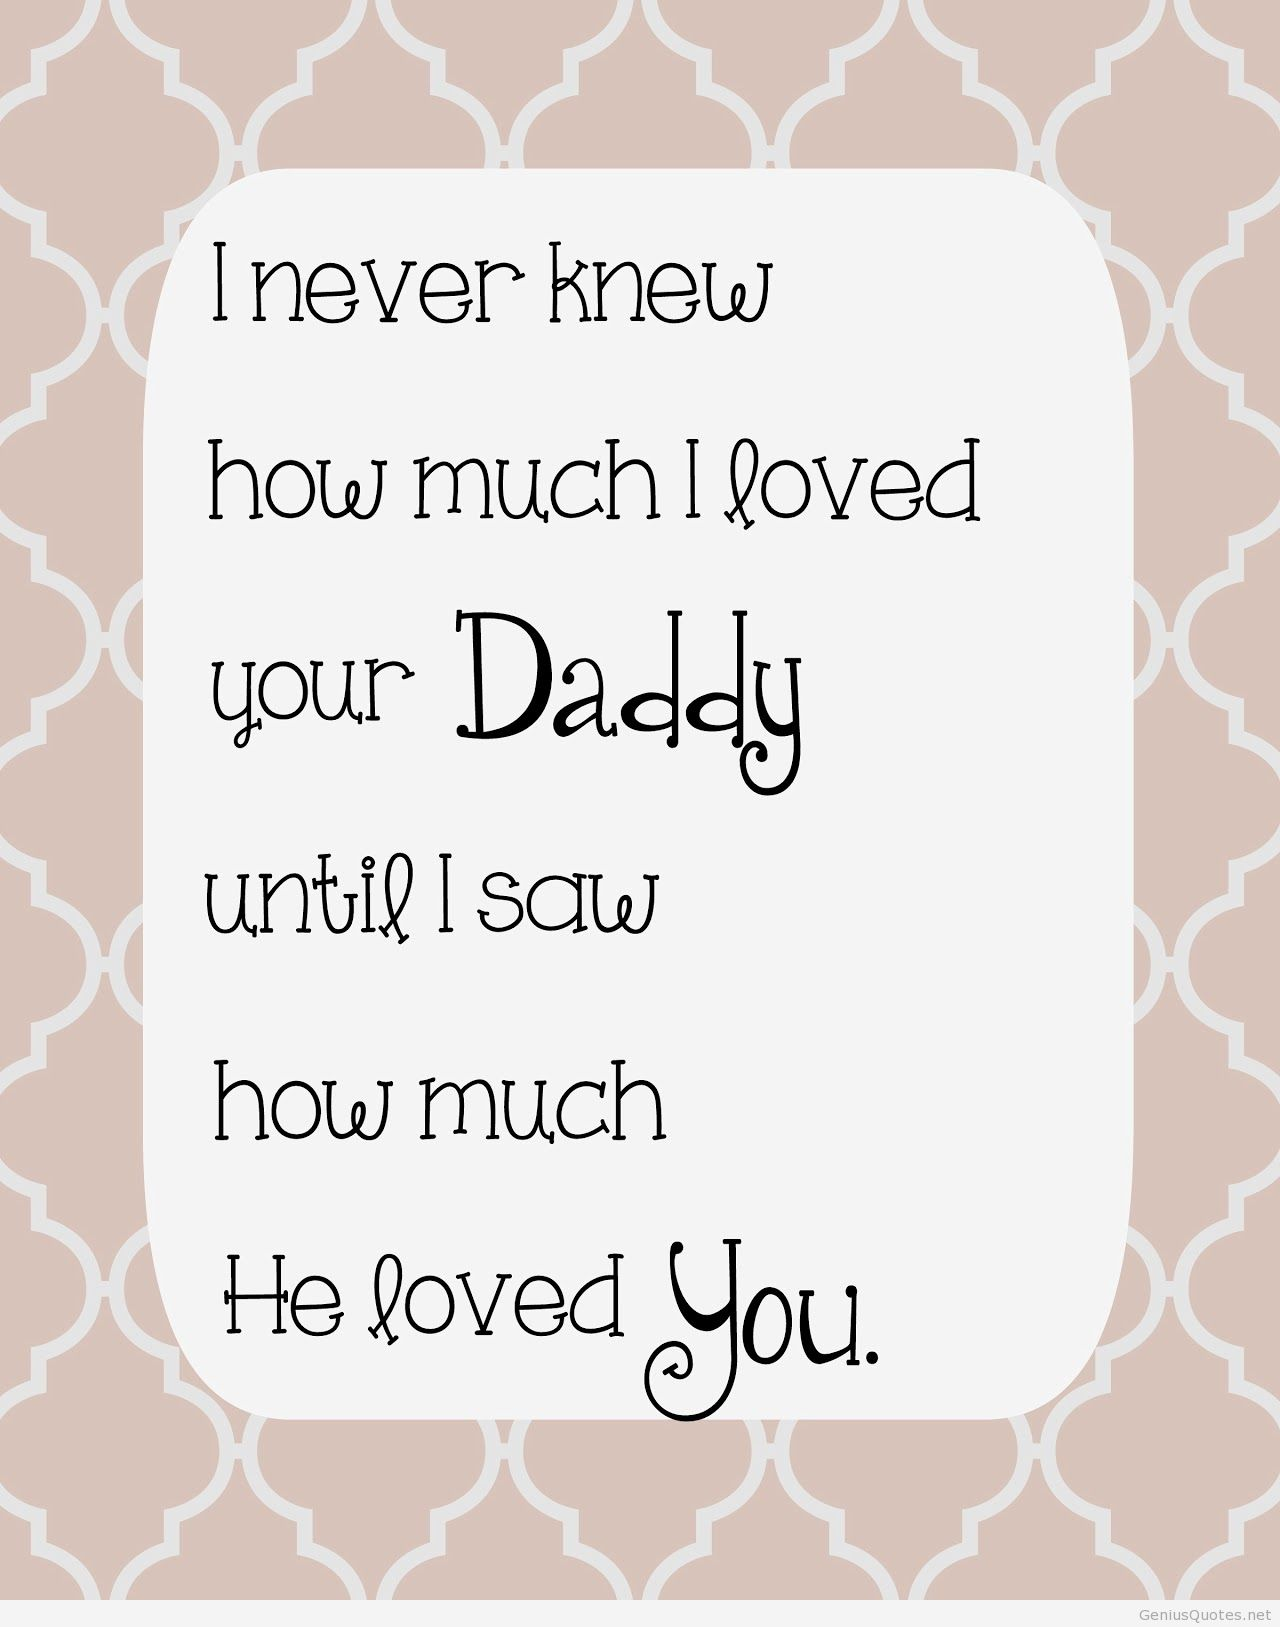 Marvelous Dad Quotes